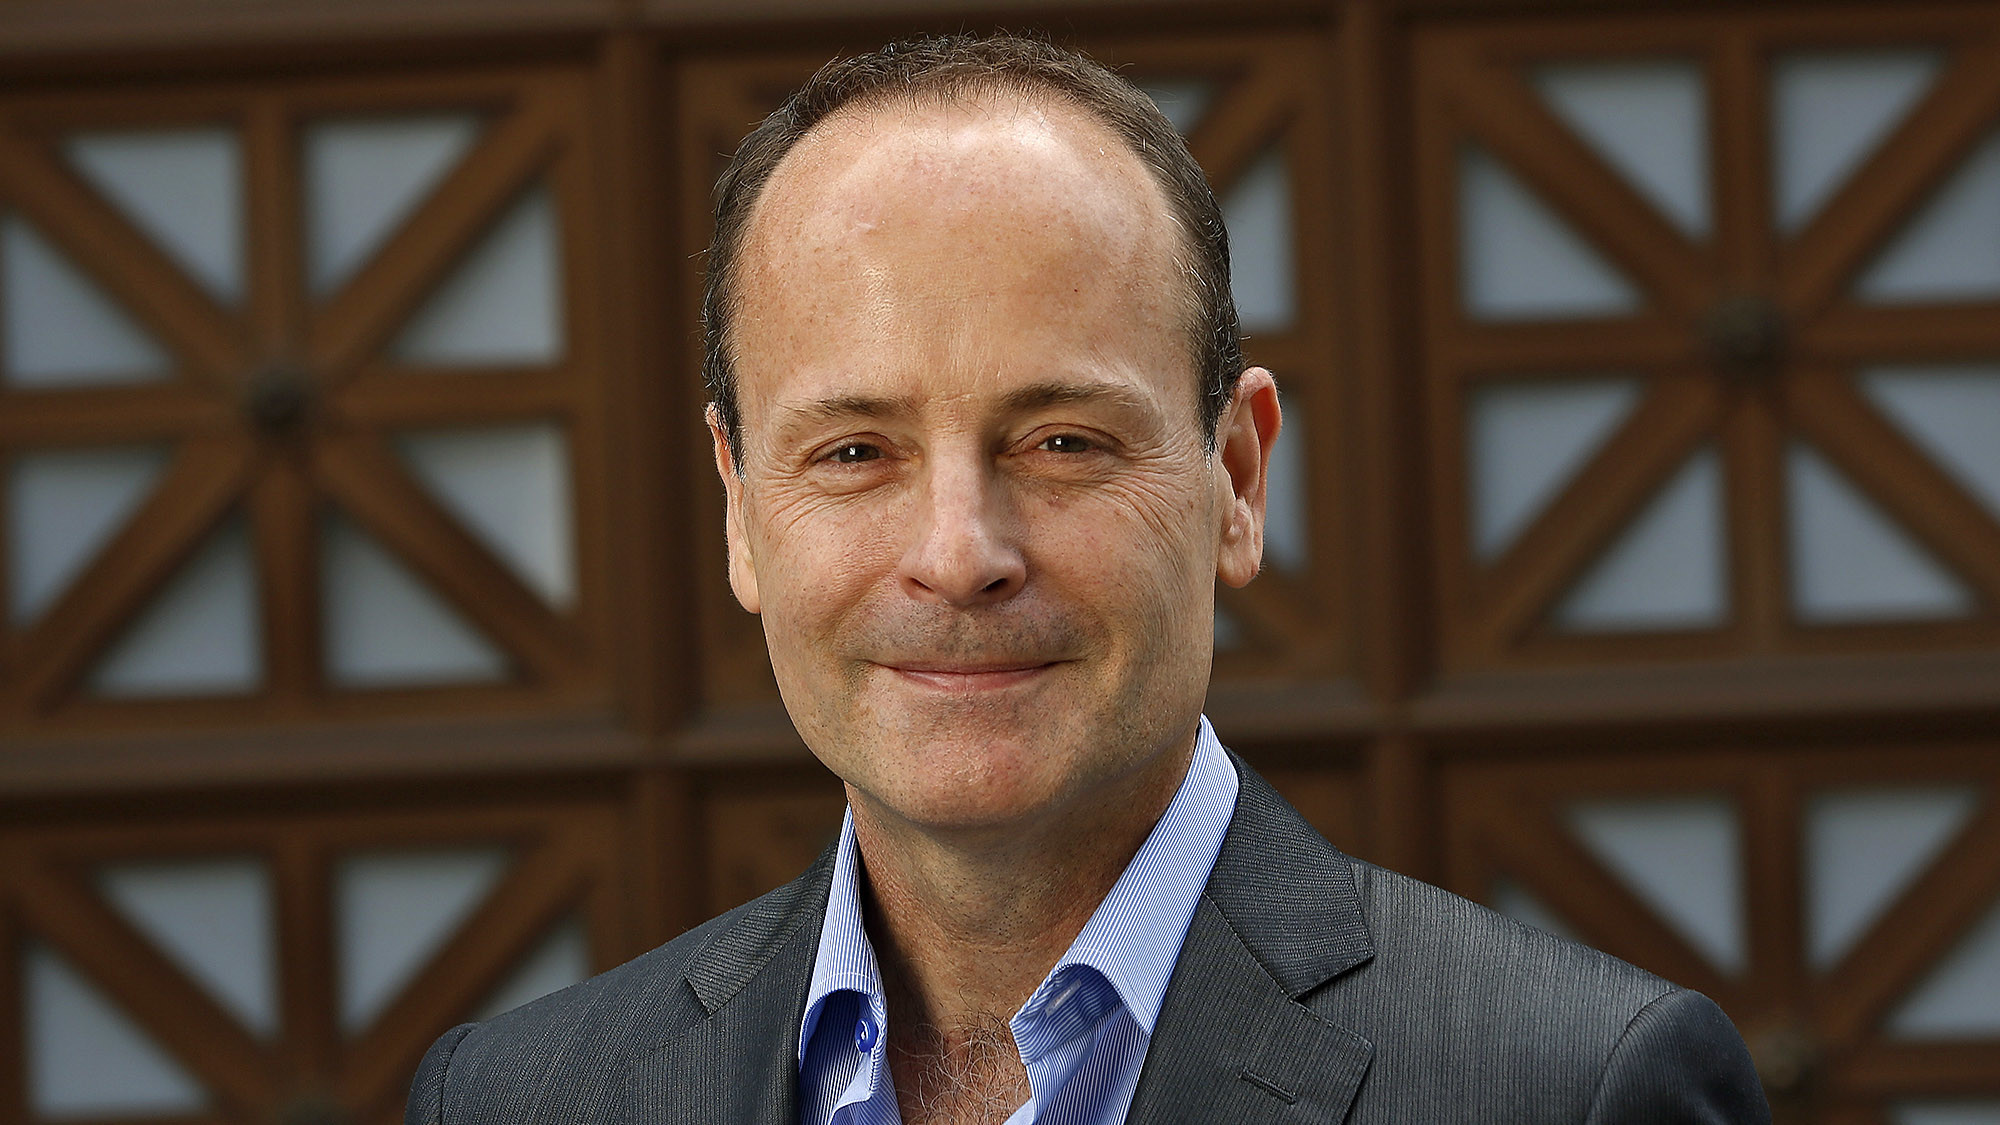 John Landgraf, CEO of FX Networks and FX Productions